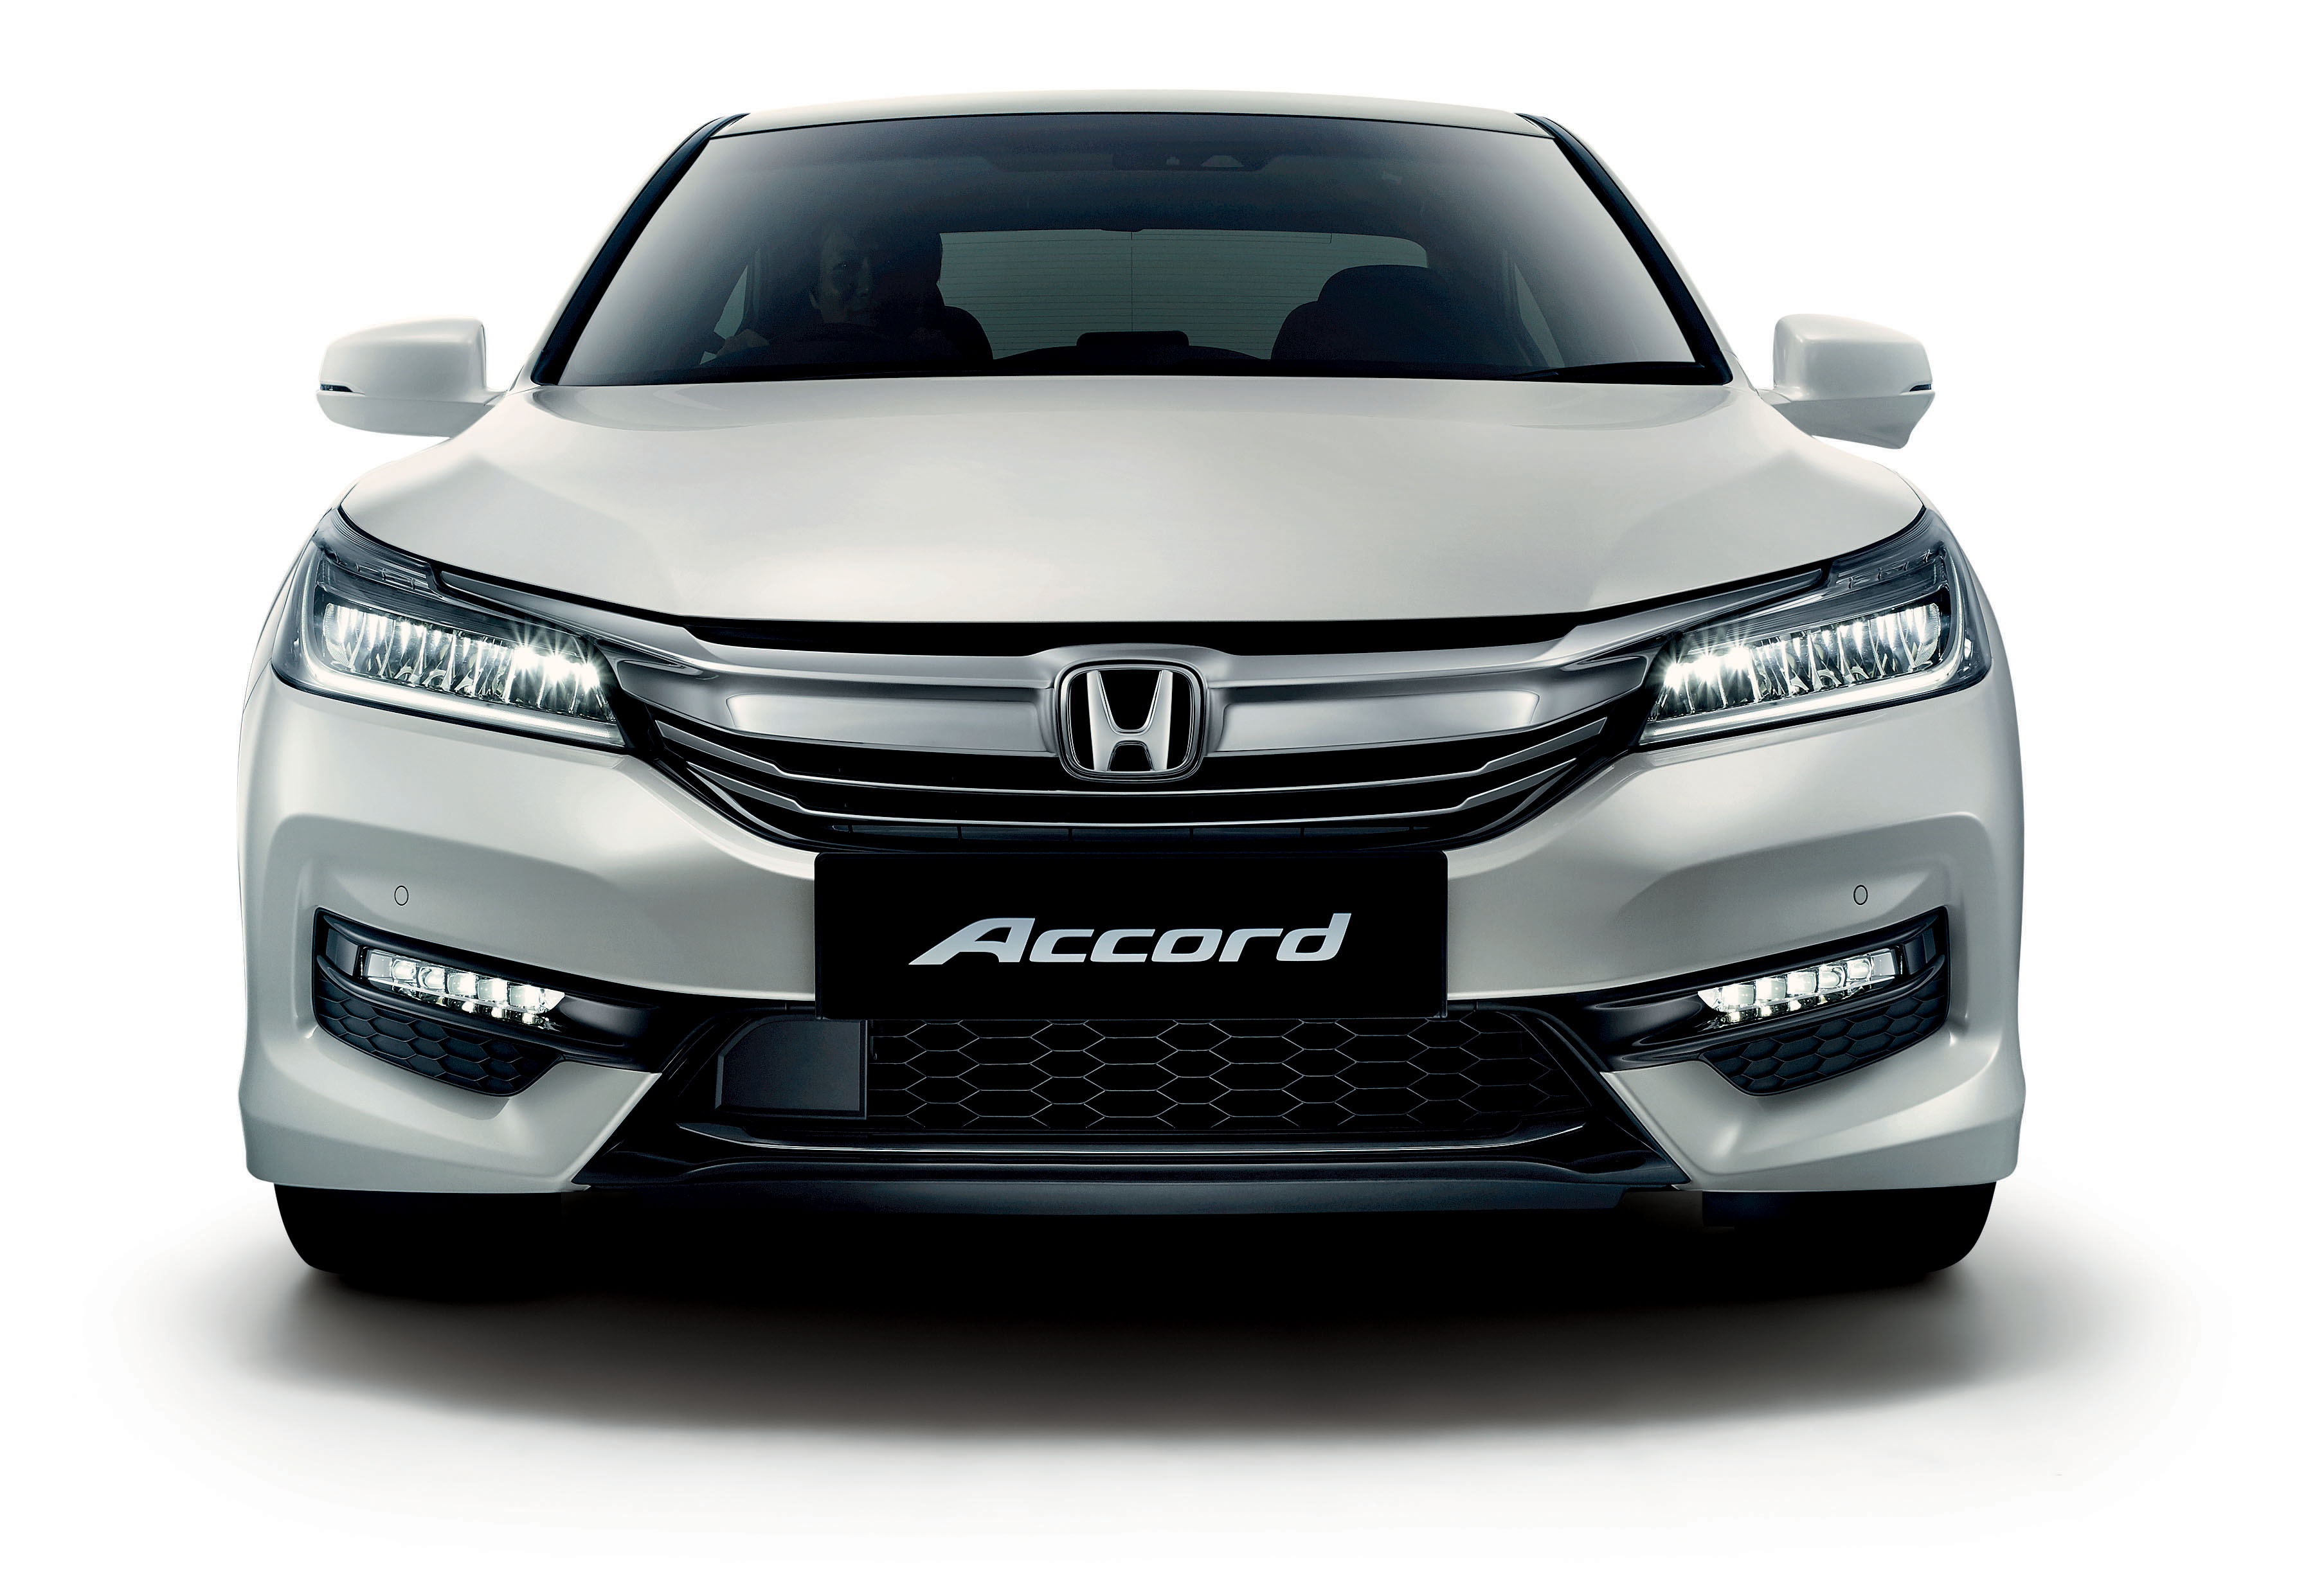 A New Sense of Safety with Honda Accord